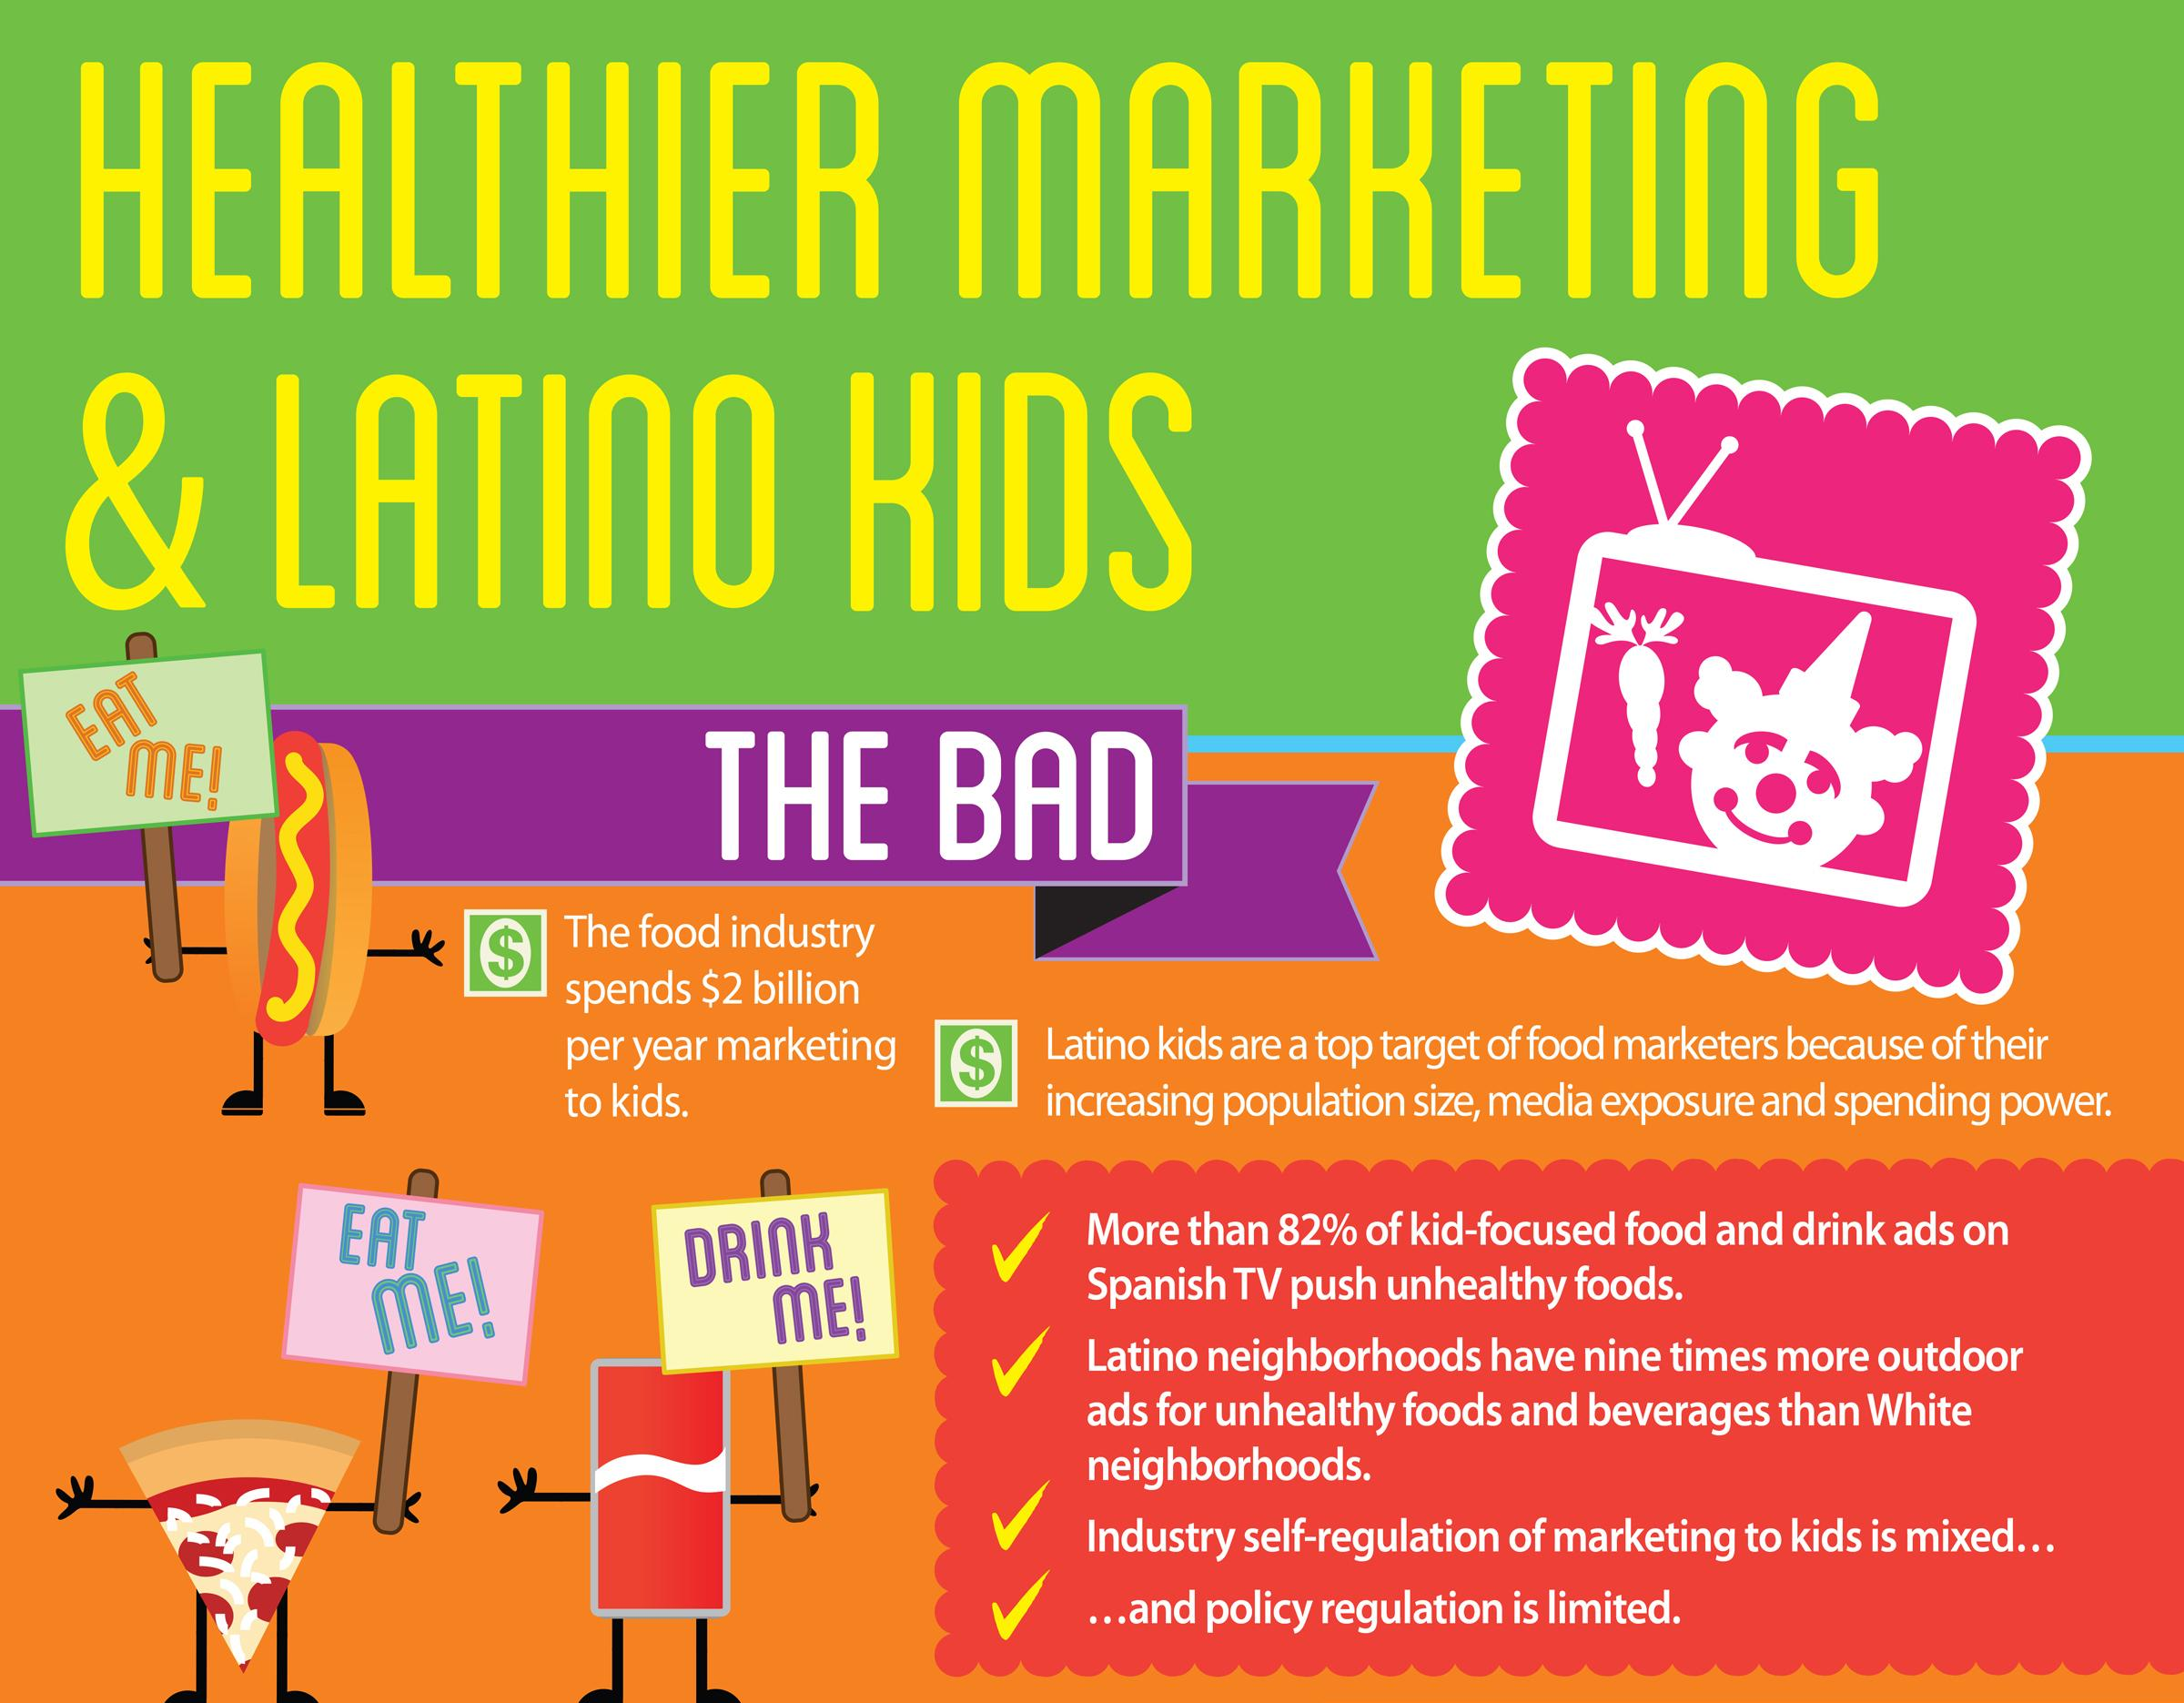 Media Exposure Spending Power Make Latino Children Top Target In Junk Food Ads